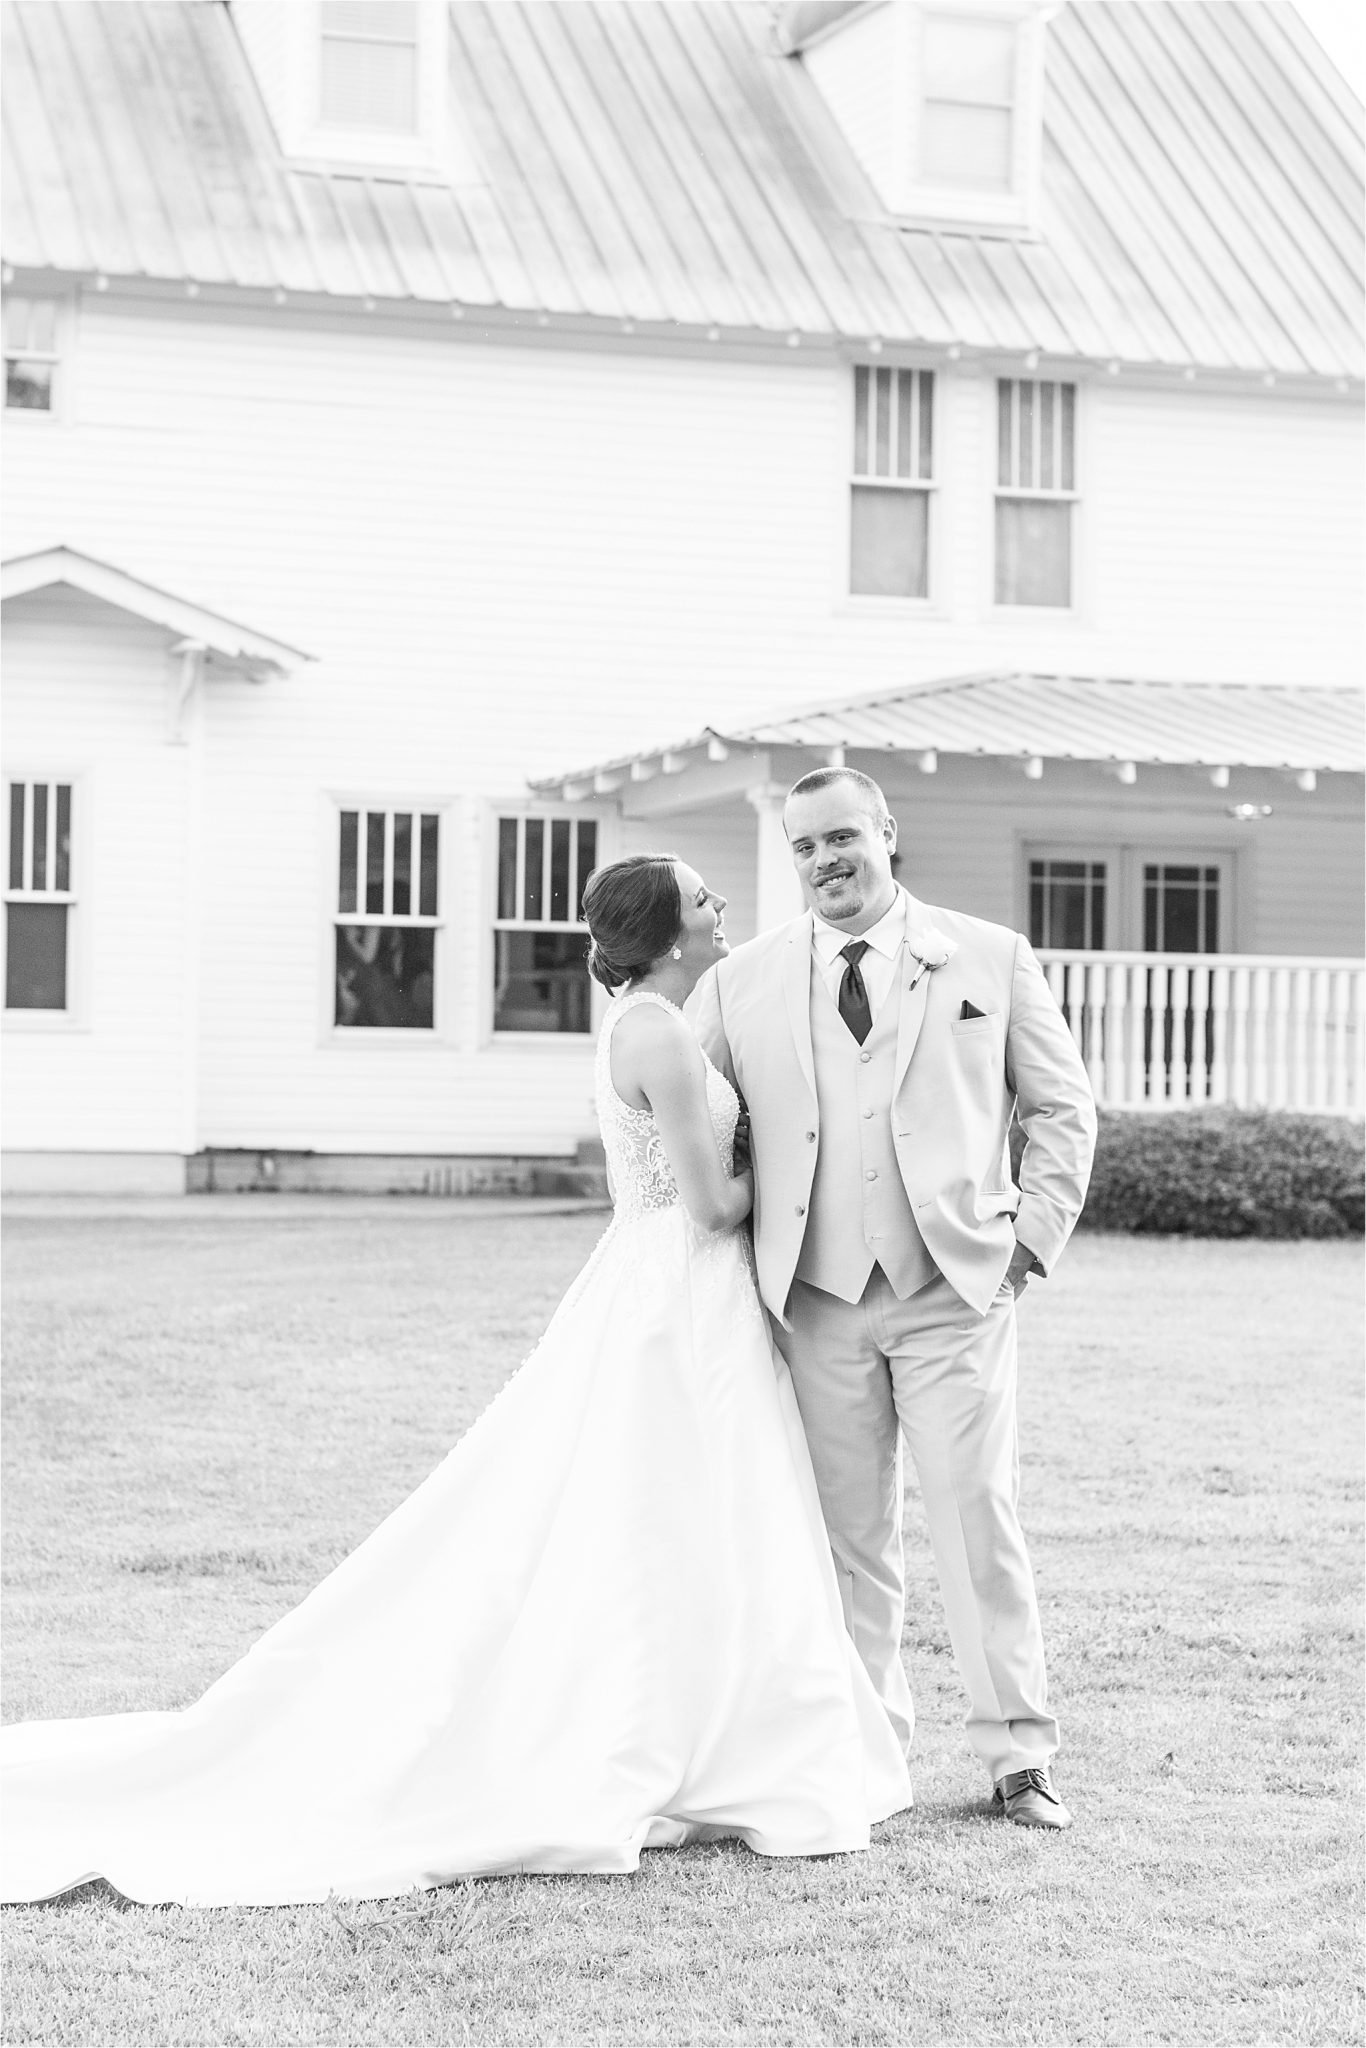 Sonnet House, Birmingham Alabama Wedding Photographer, Romantic wedding shoot